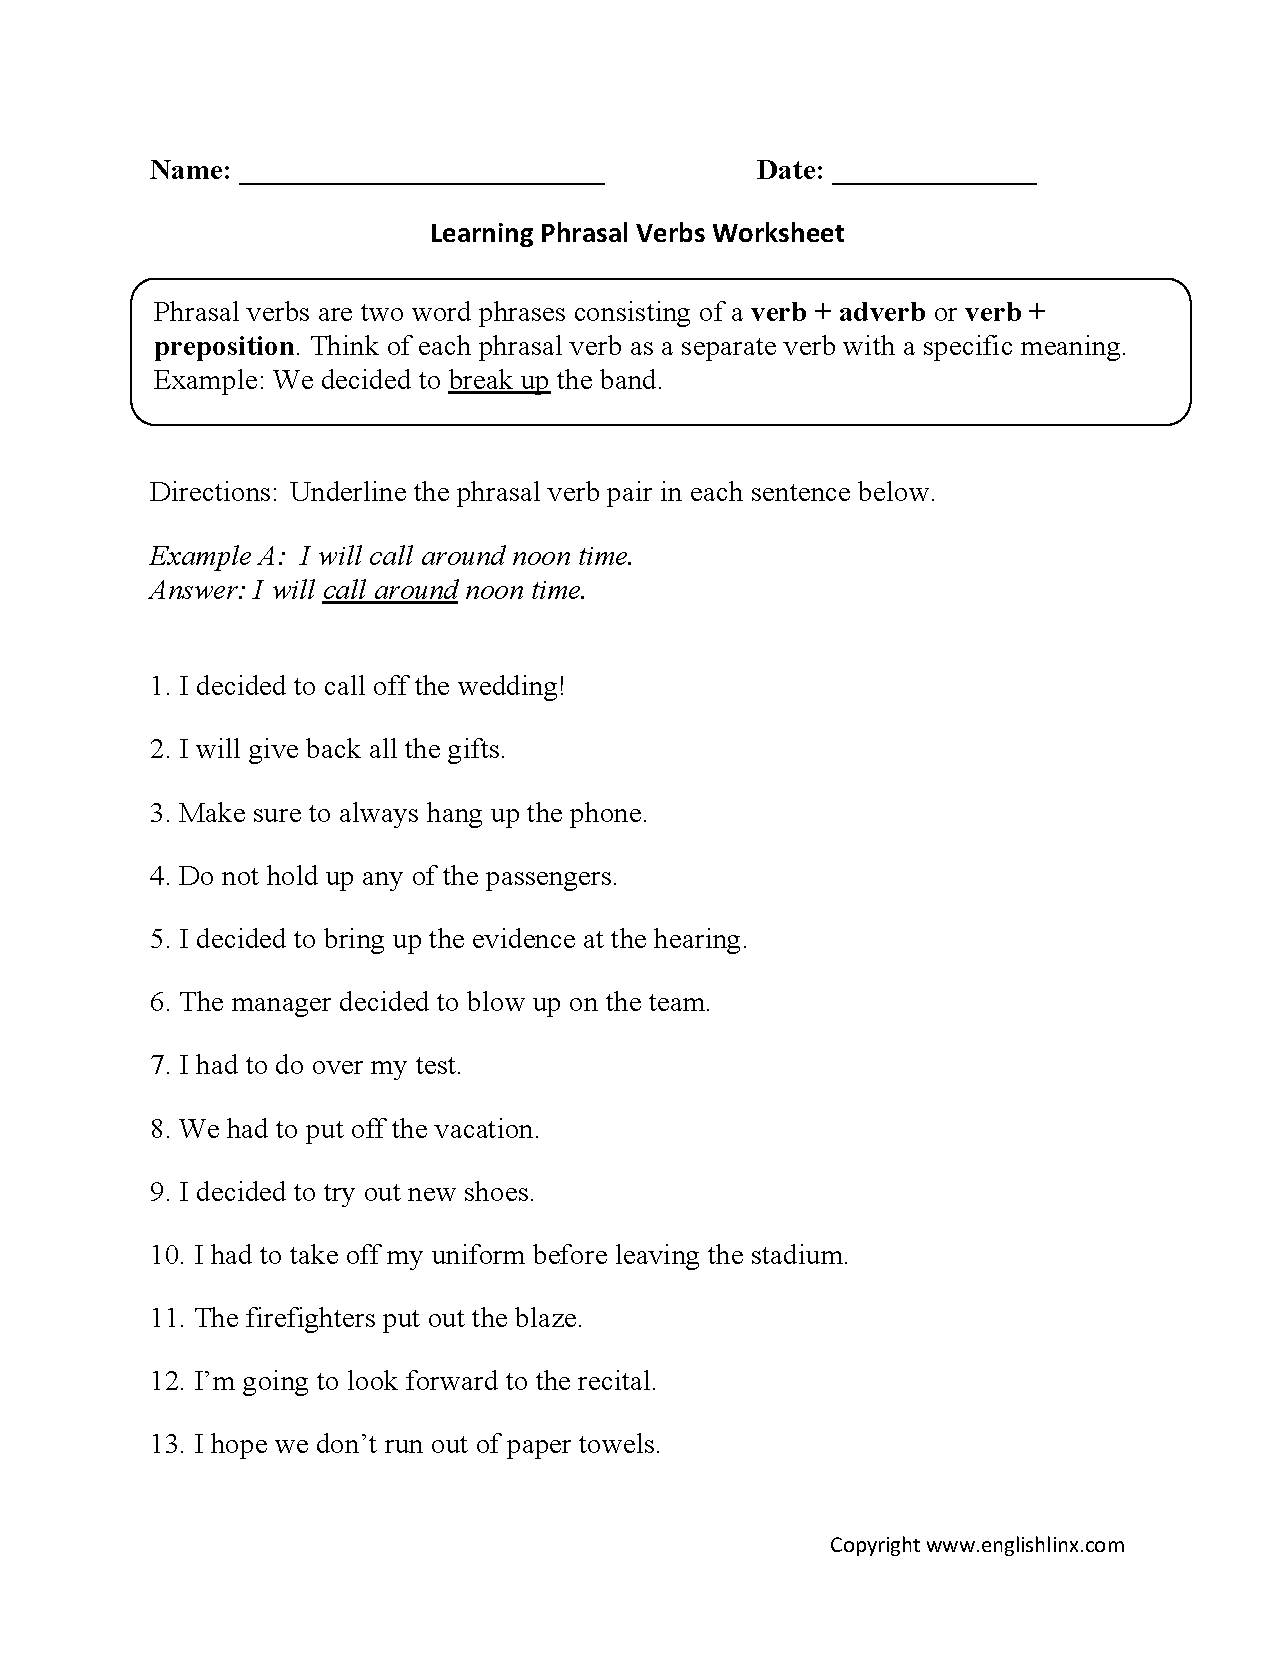 Worksheets Parts Of Speech Worksheets High School englishlinx com verbs worksheets phrasal worksheets